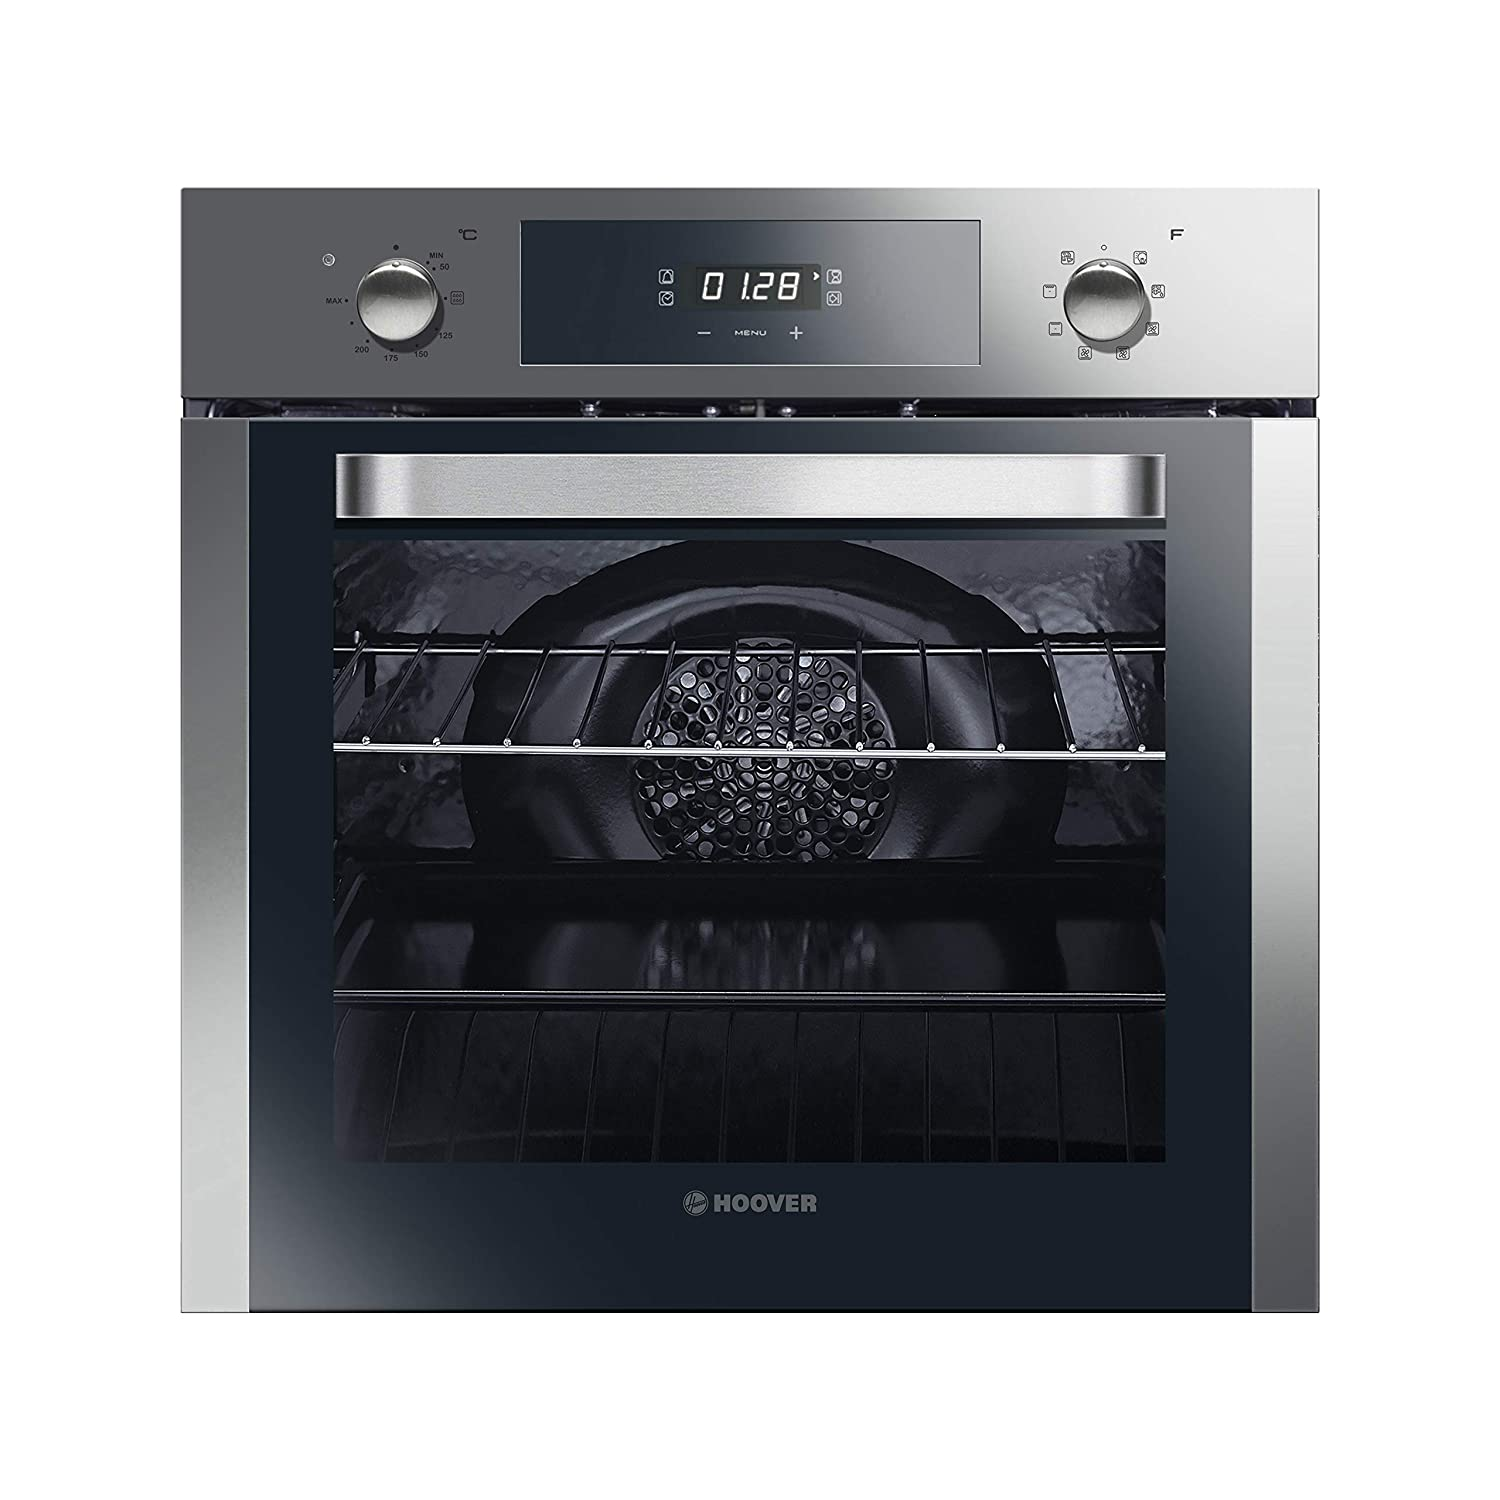 Hoover HOSM6581IN Electric Multifunctional Built-In Single Oven in Stainless Steel Finish with 65 litre capacity and A Energy Rating [Energy Class A]